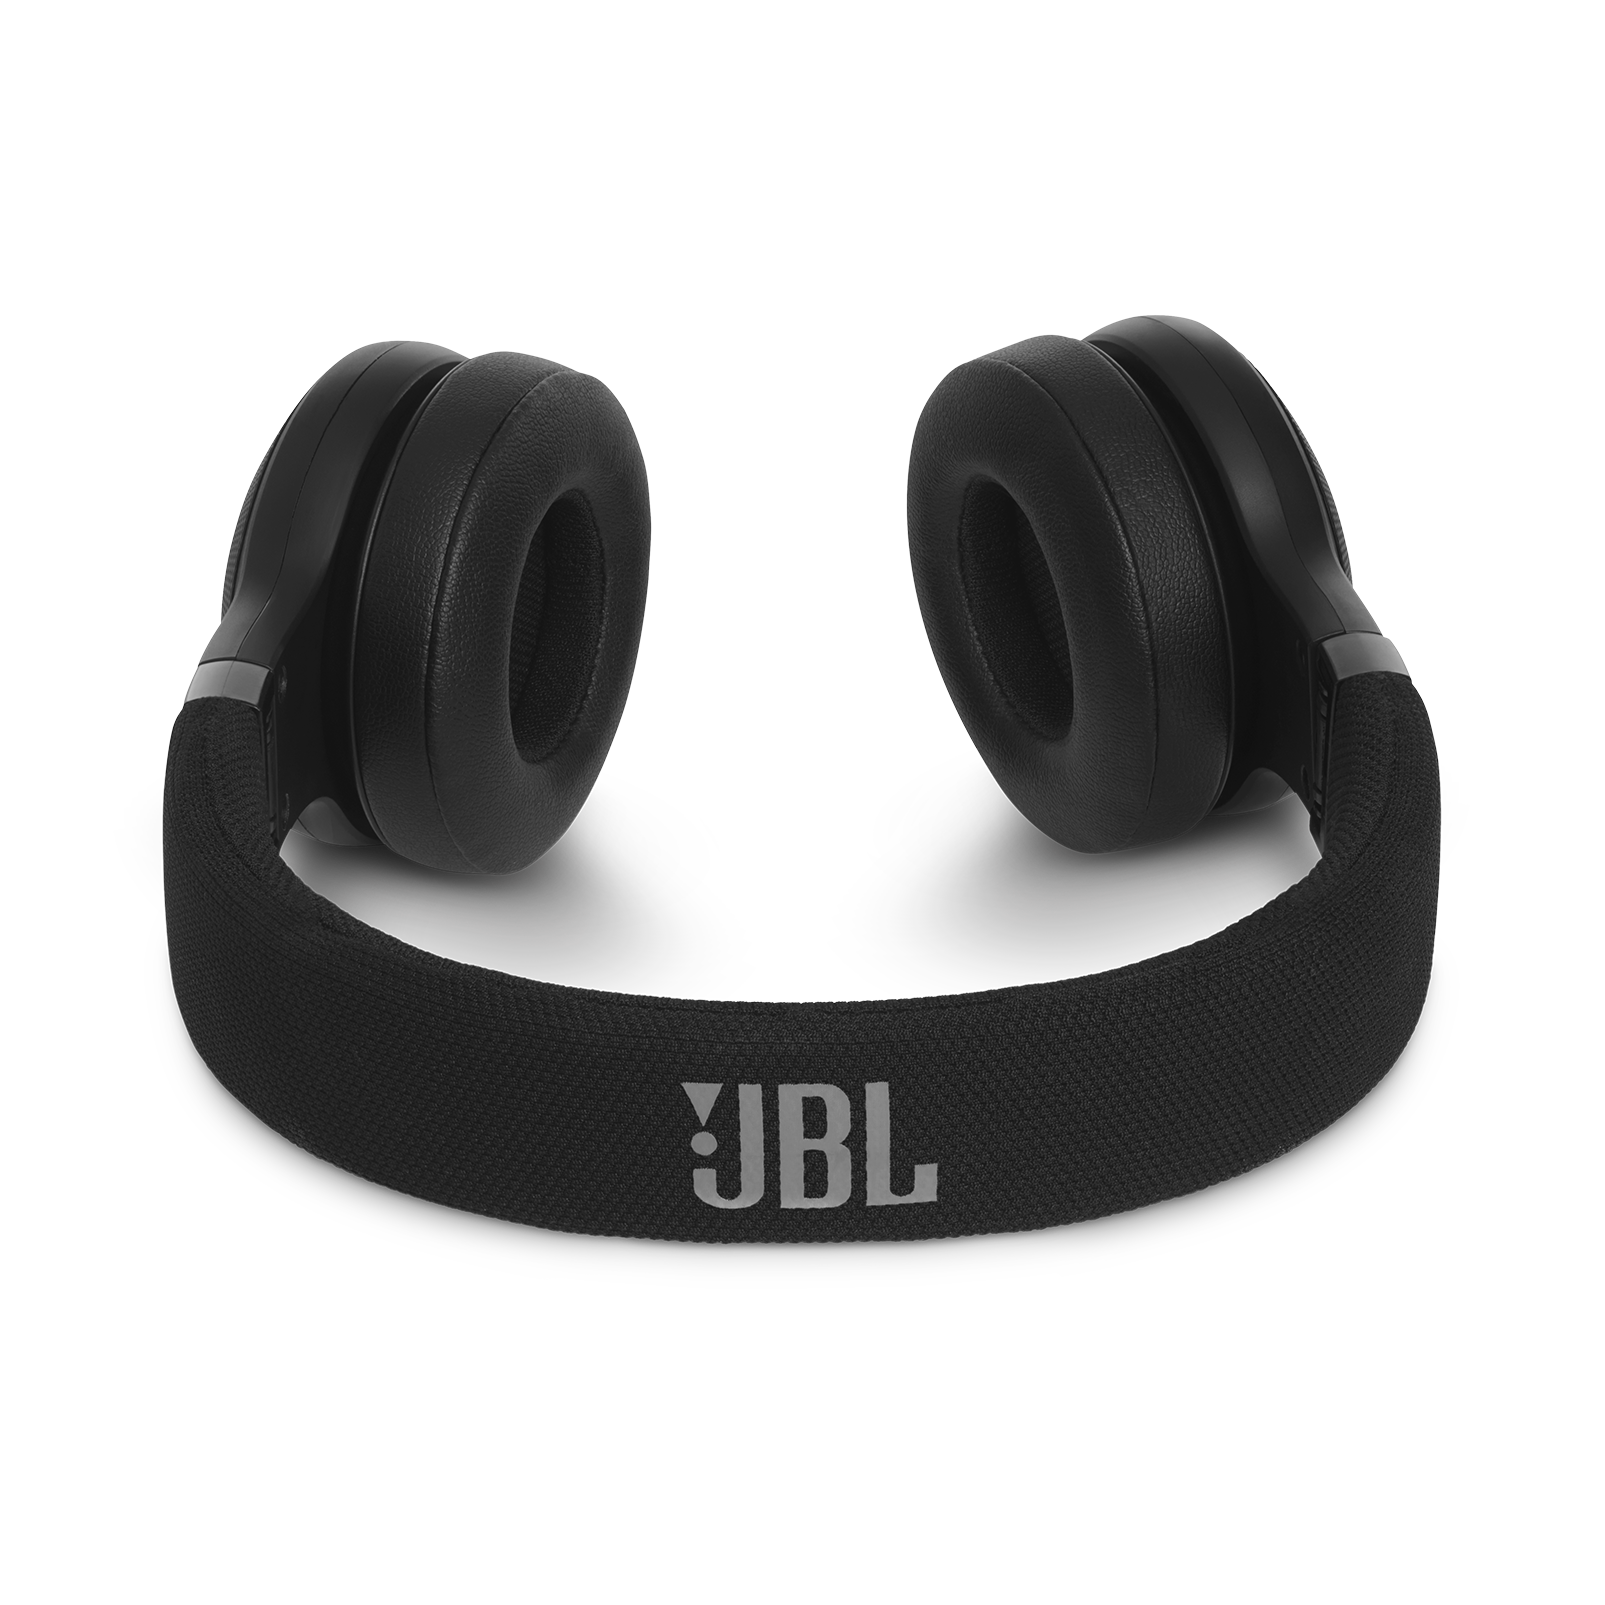 JBL E45BT - Black - Wireless on-ear headphones - Detailshot 3